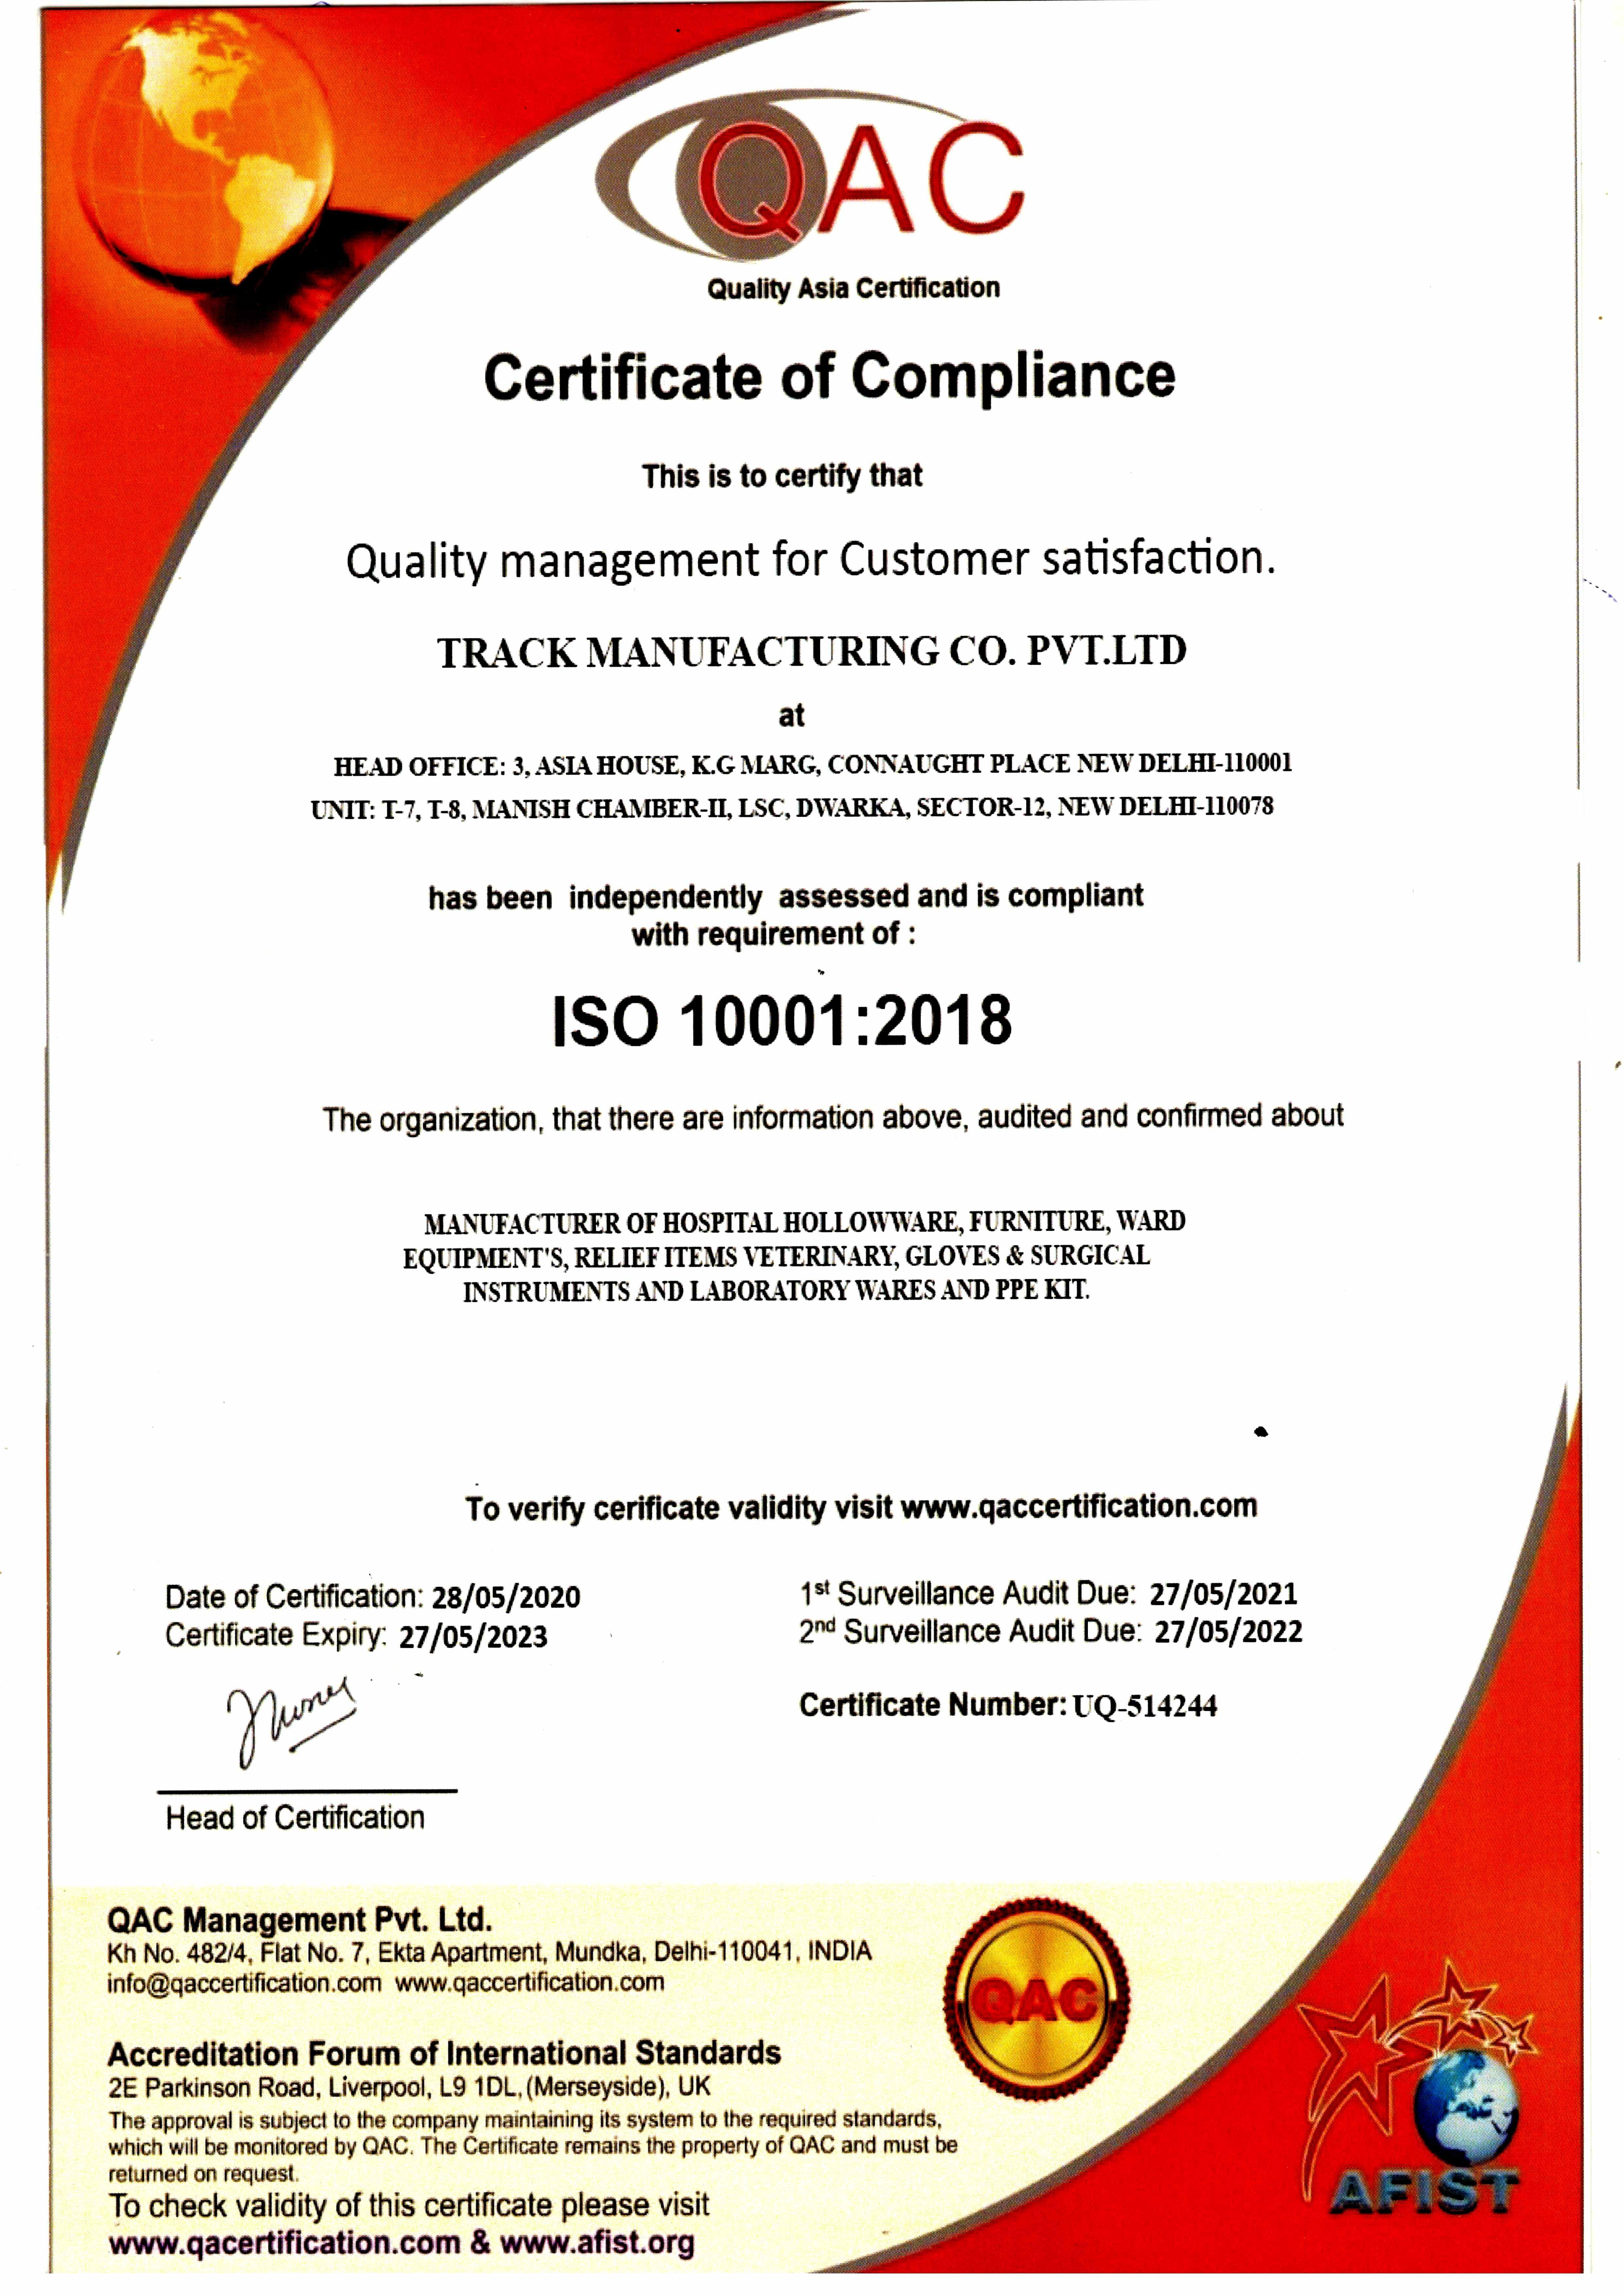 ISO 10001-2018